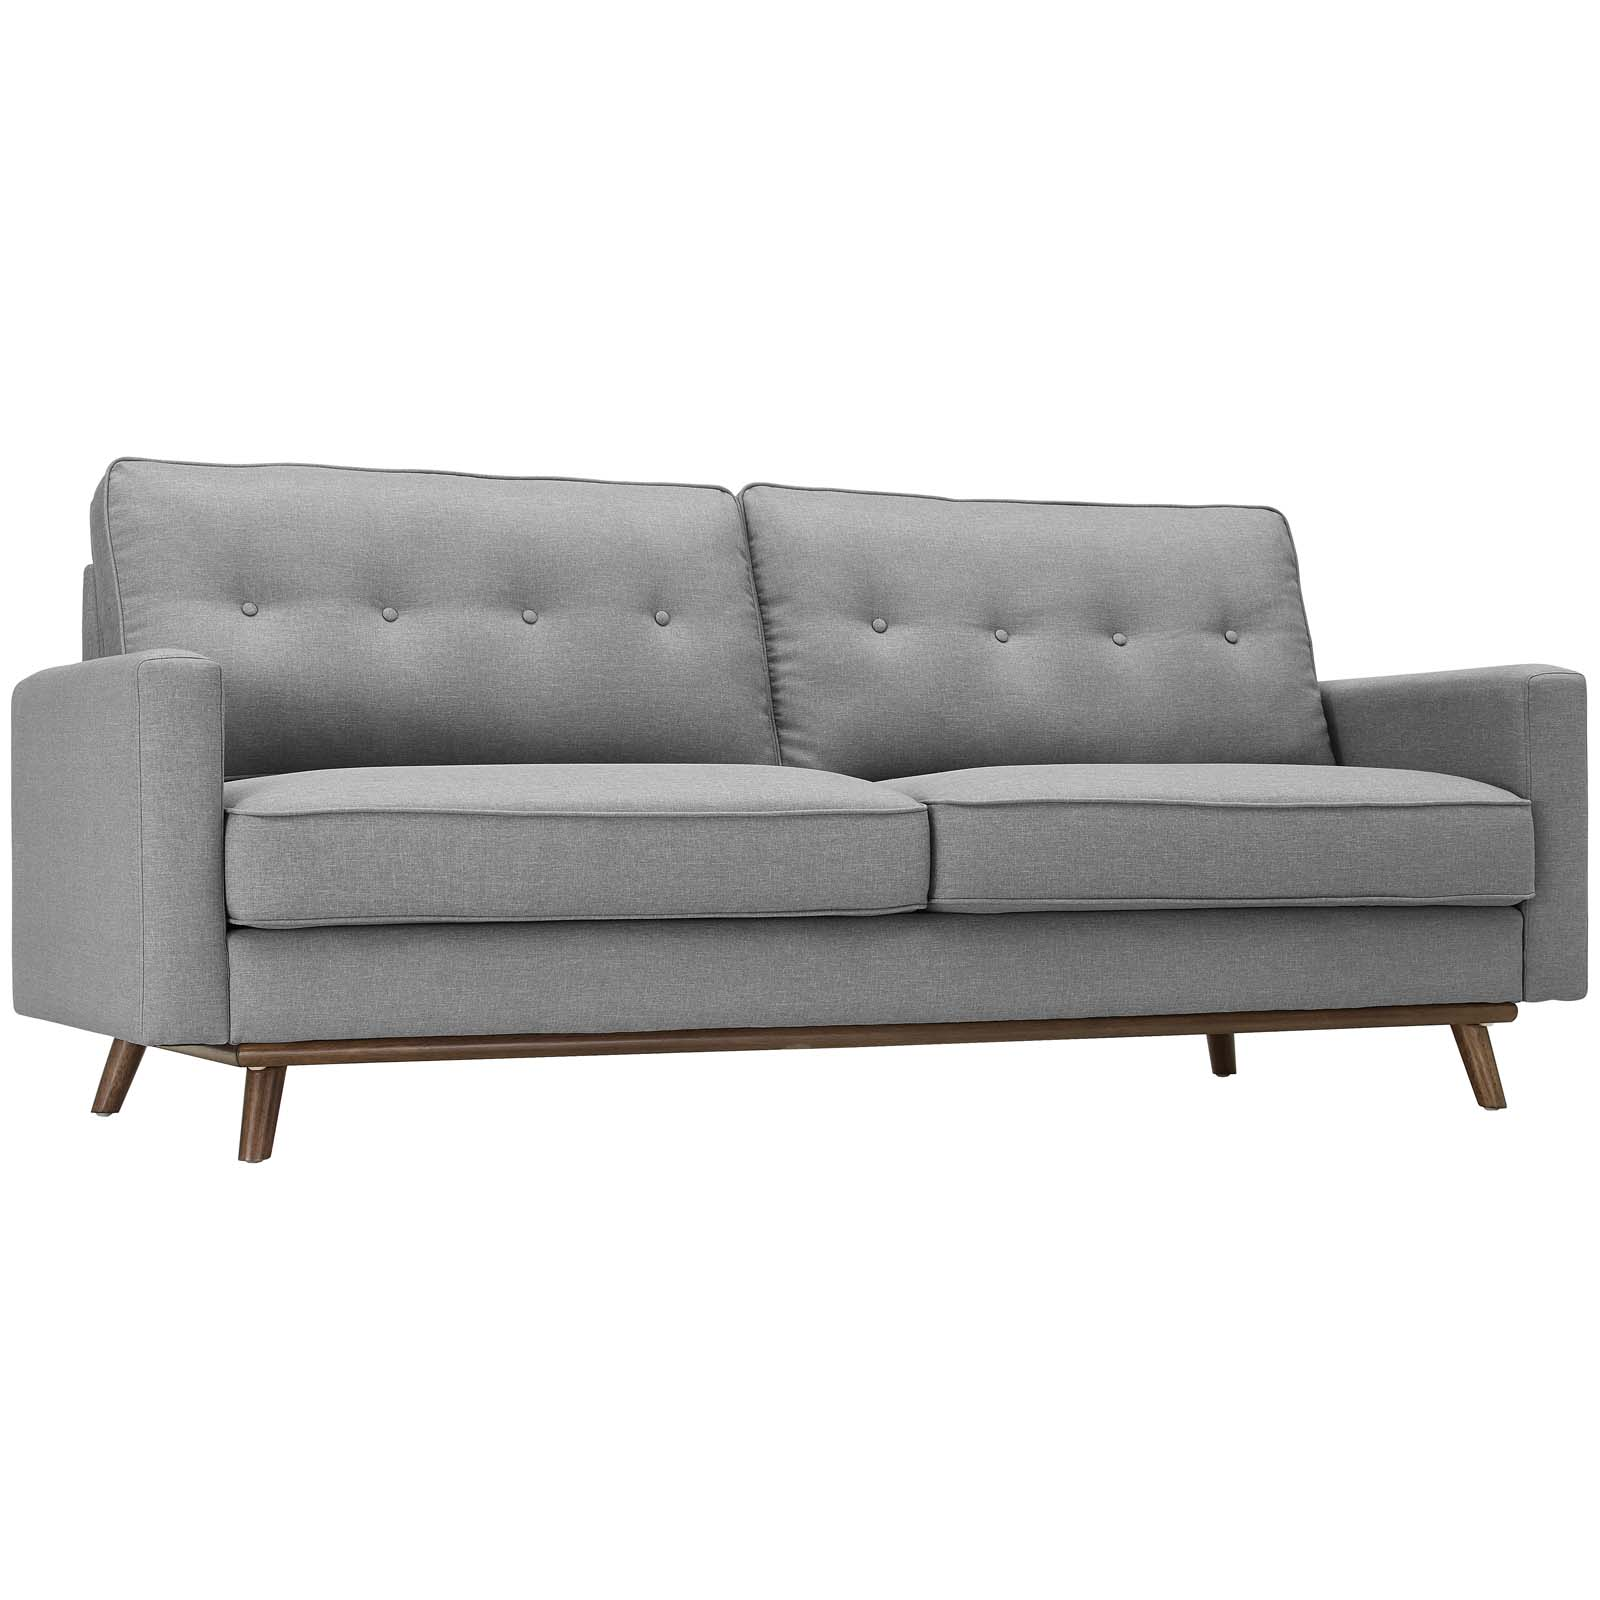 Vassie 3-Seater Sofa (Light Gray/Wood)